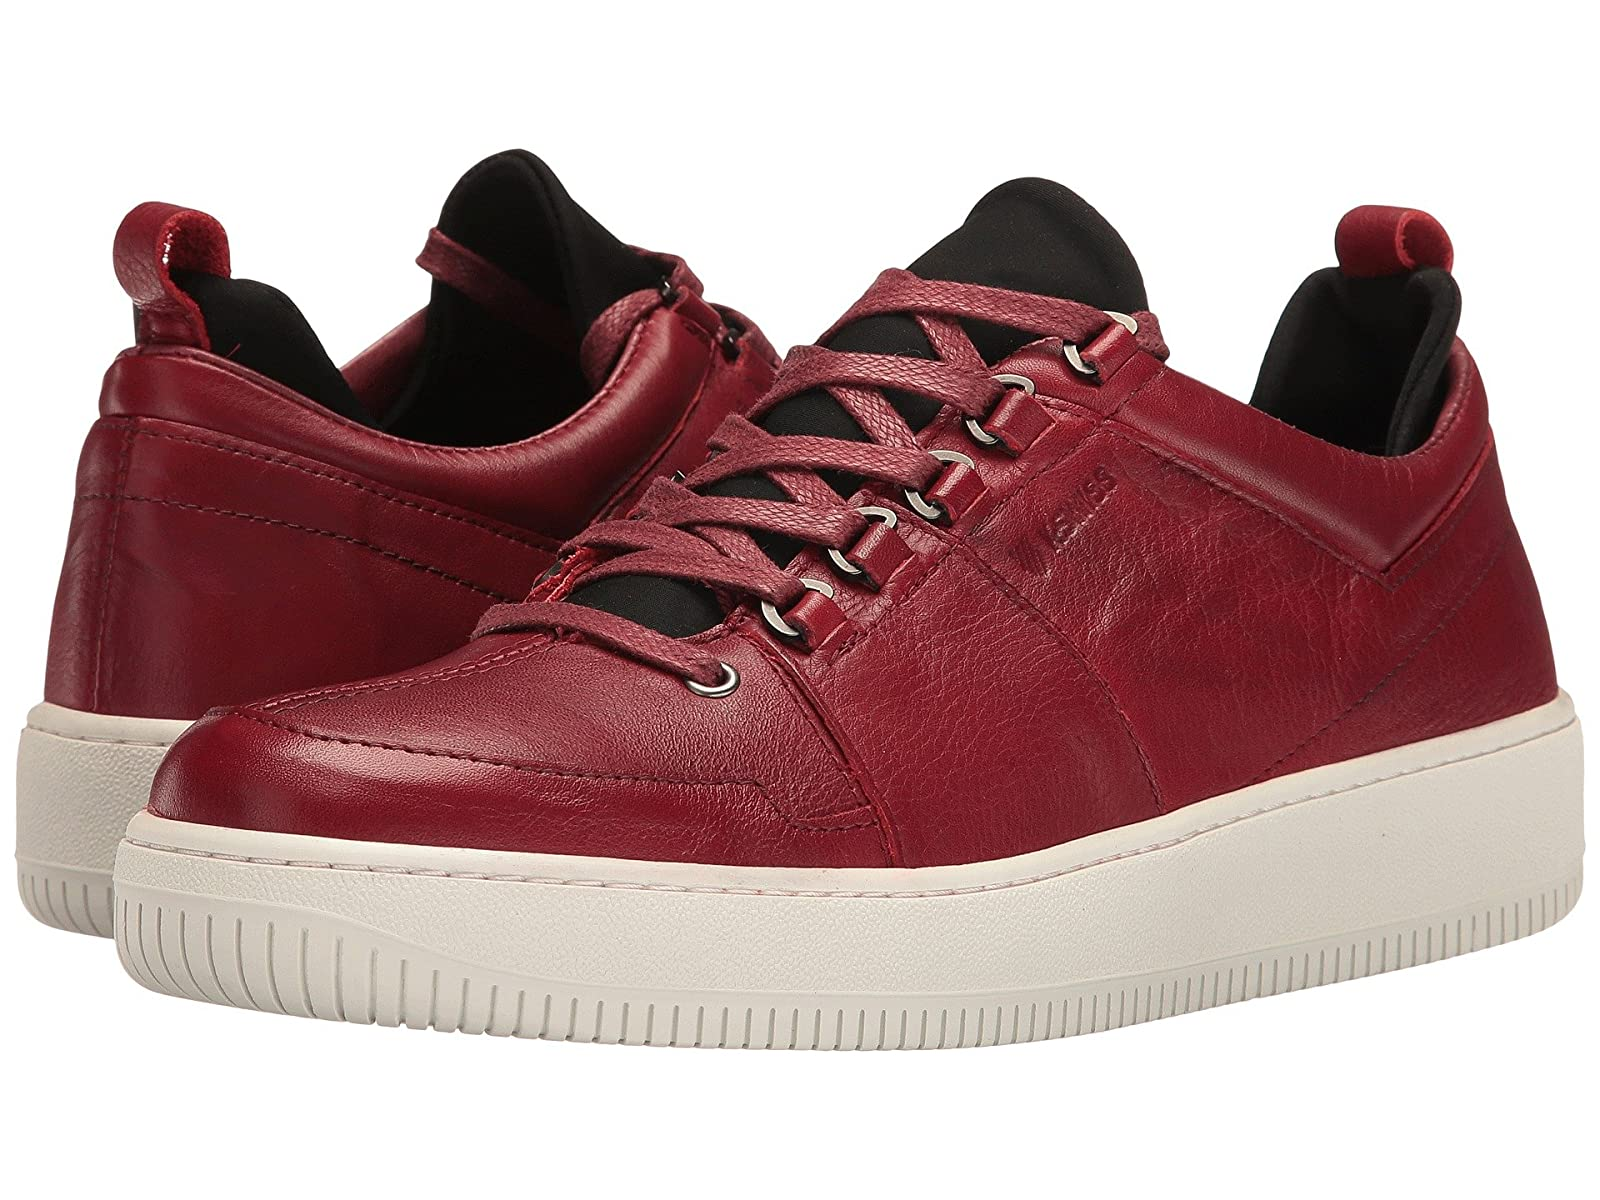 K-Swiss Classico SportCheap and distinctive eye-catching shoes